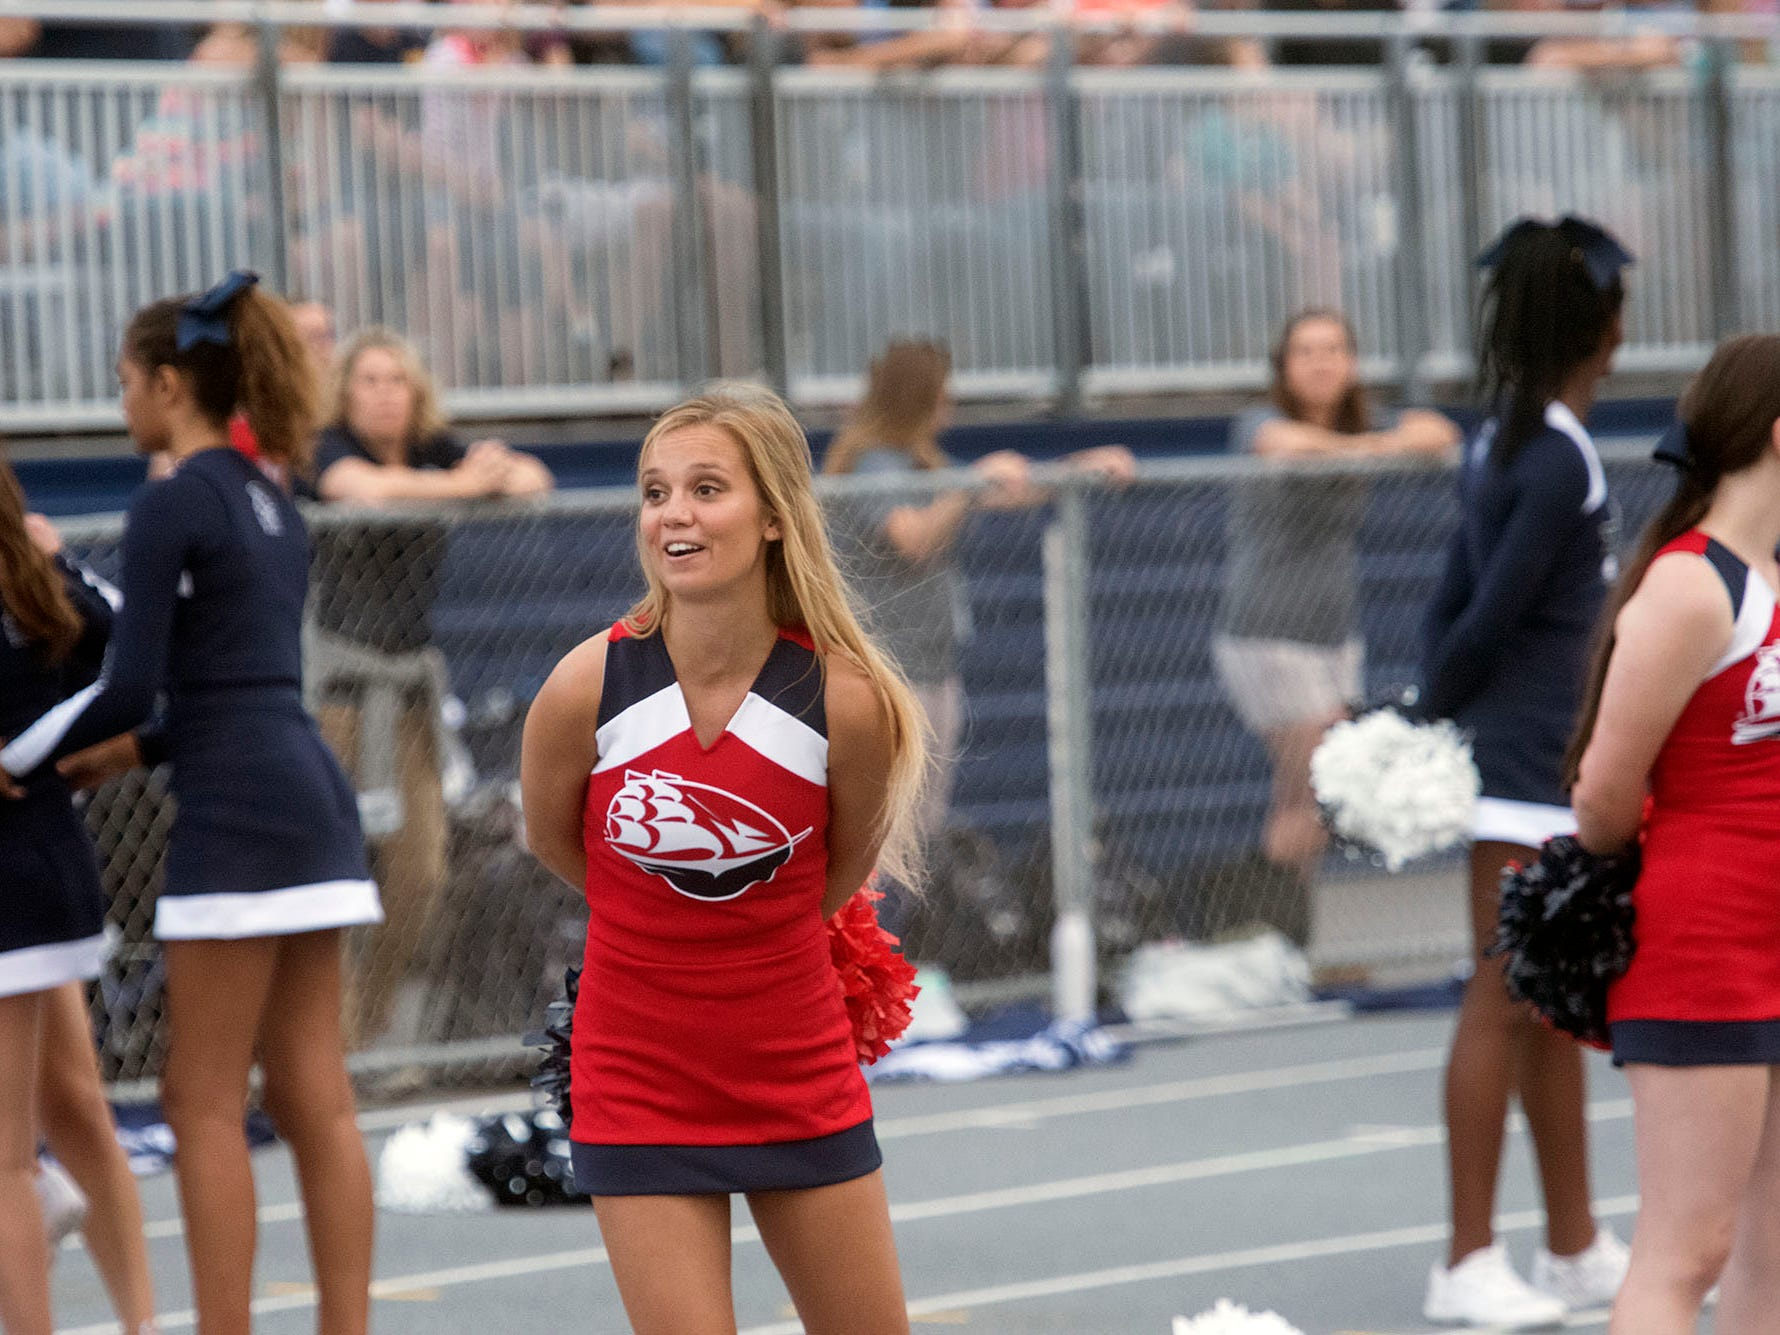 A Shippensburg University cheerleader joins Trojan cheerleaders for the South Western game. Chambersburg routed South Western 51-26 in football on Friday, Aug. 31, 2018.